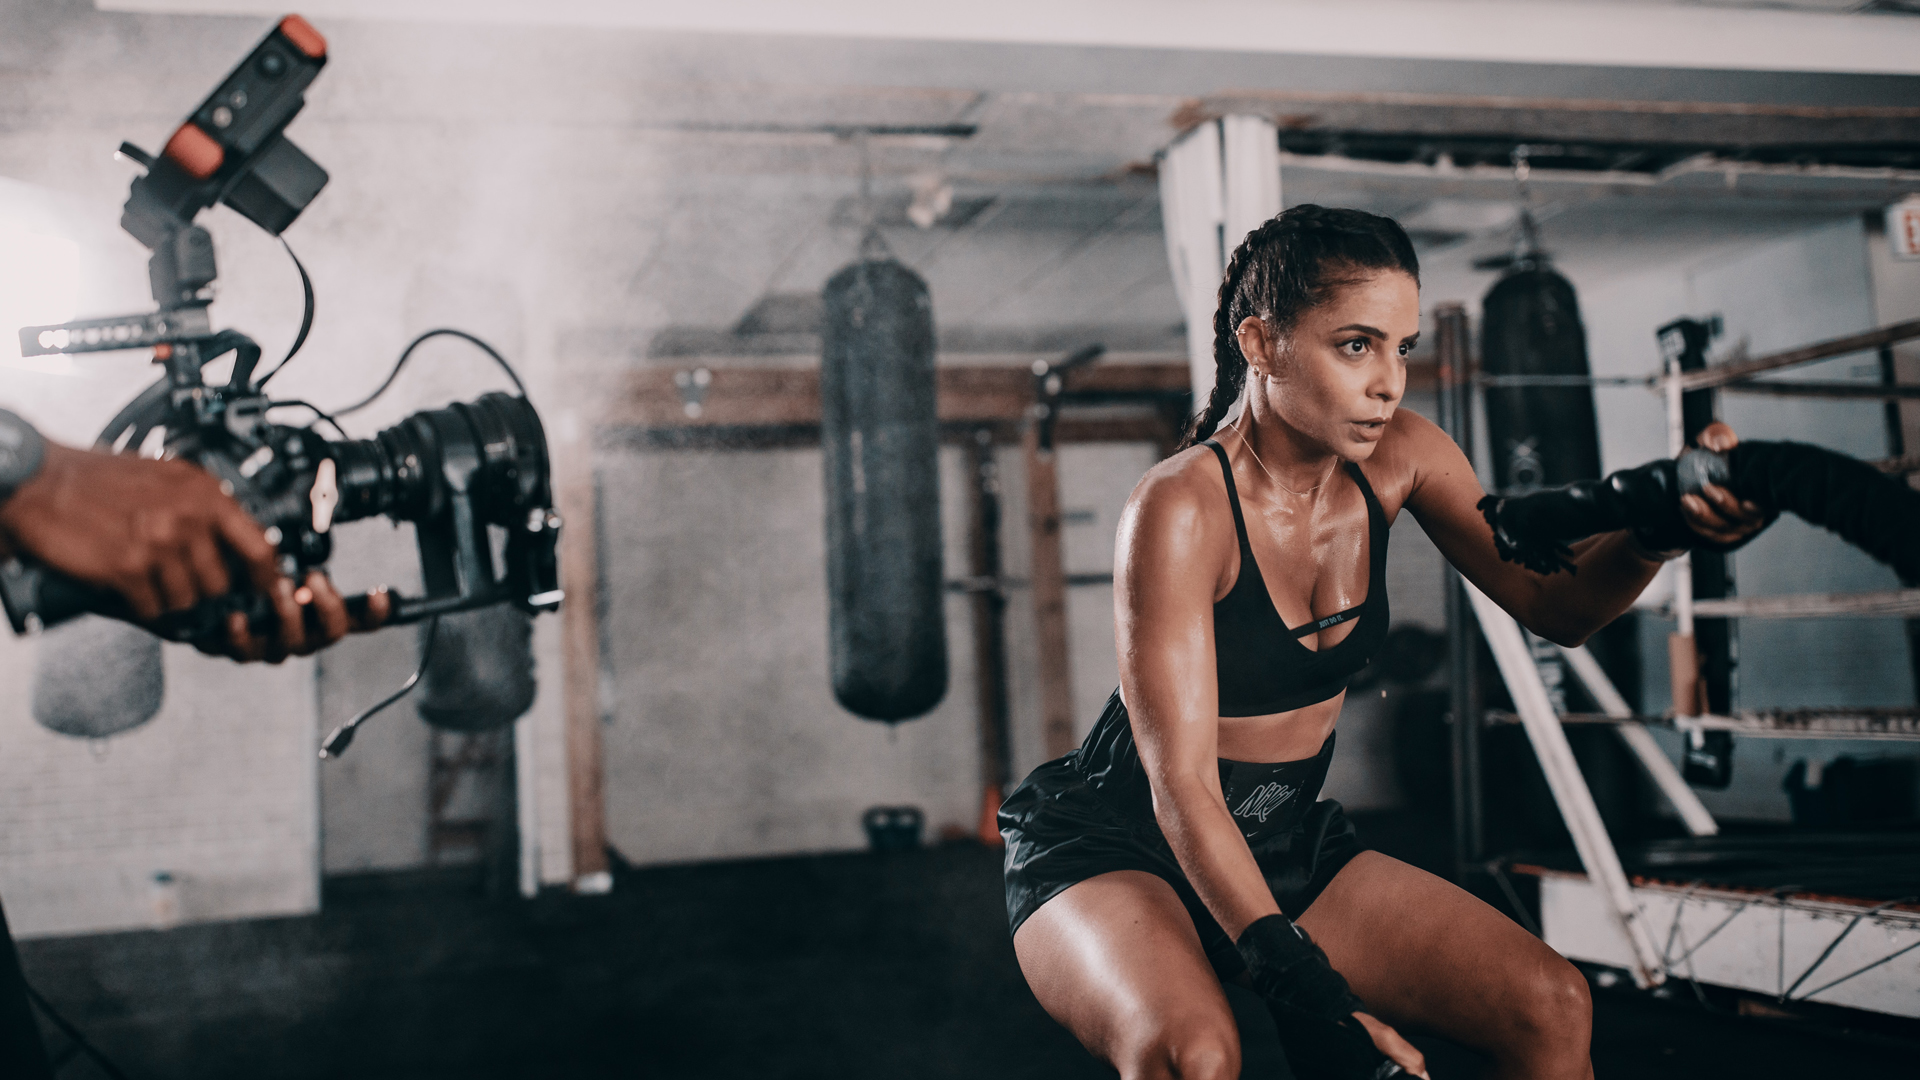 MXT woman workout using maxiting rope to increase stamina and performance